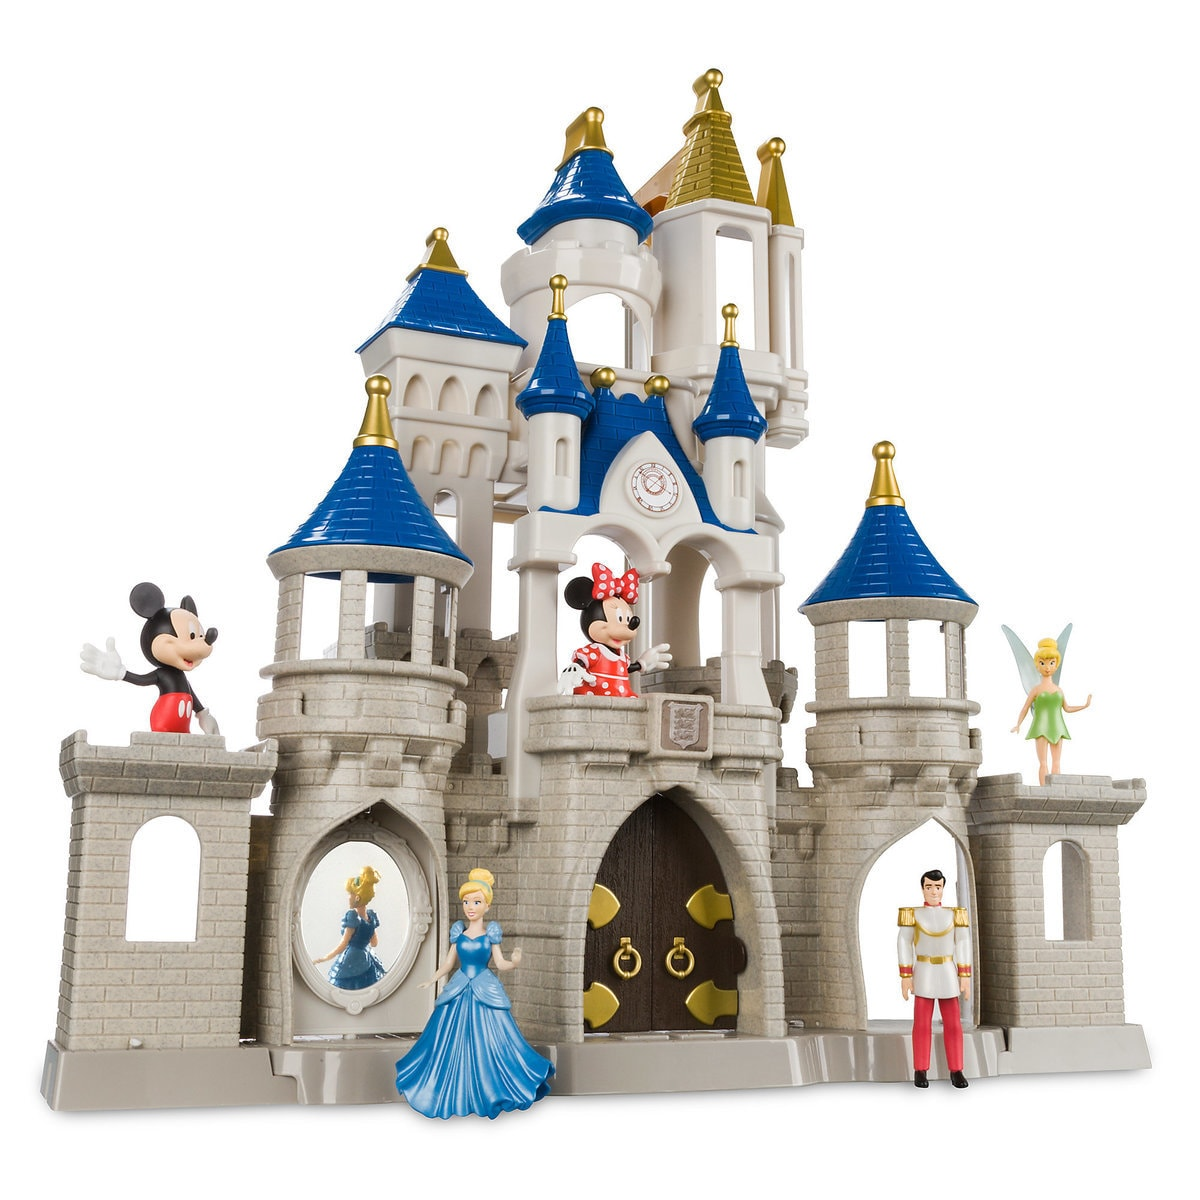 Product Image of Cinderella Castle Play Set - Walt Disney World # 1